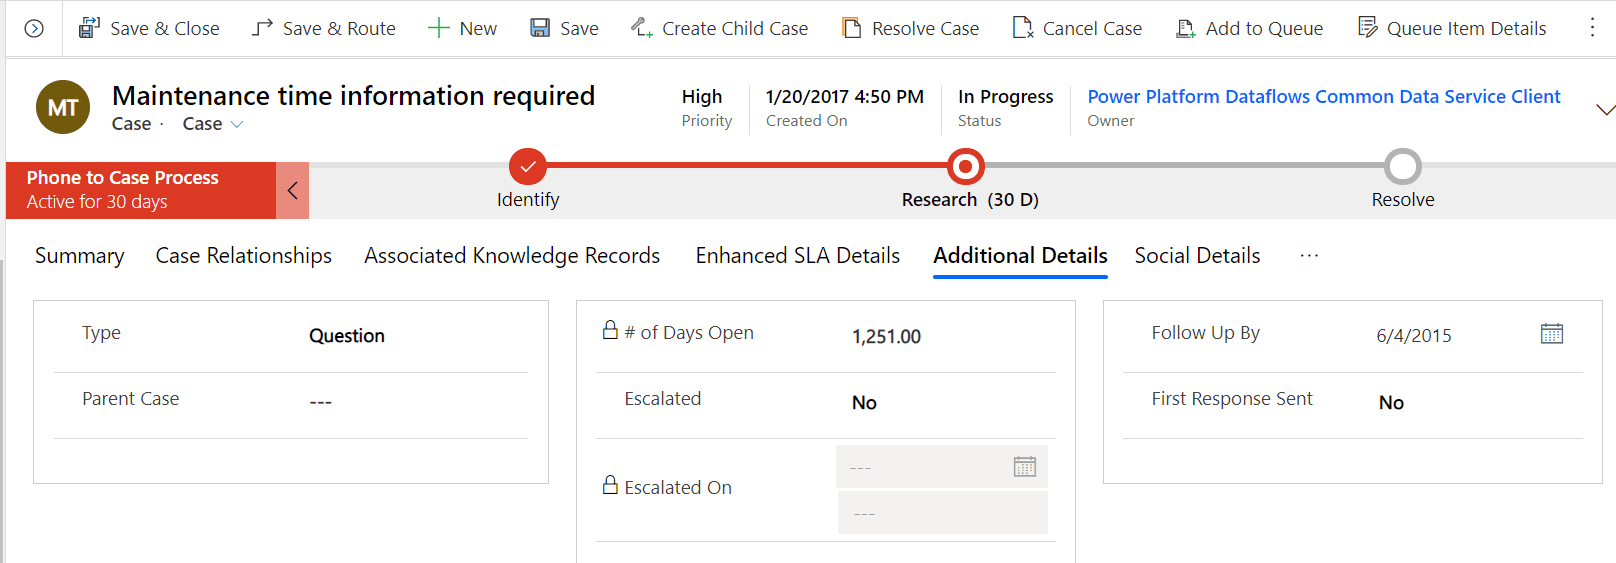 How to Use Calculated Fields